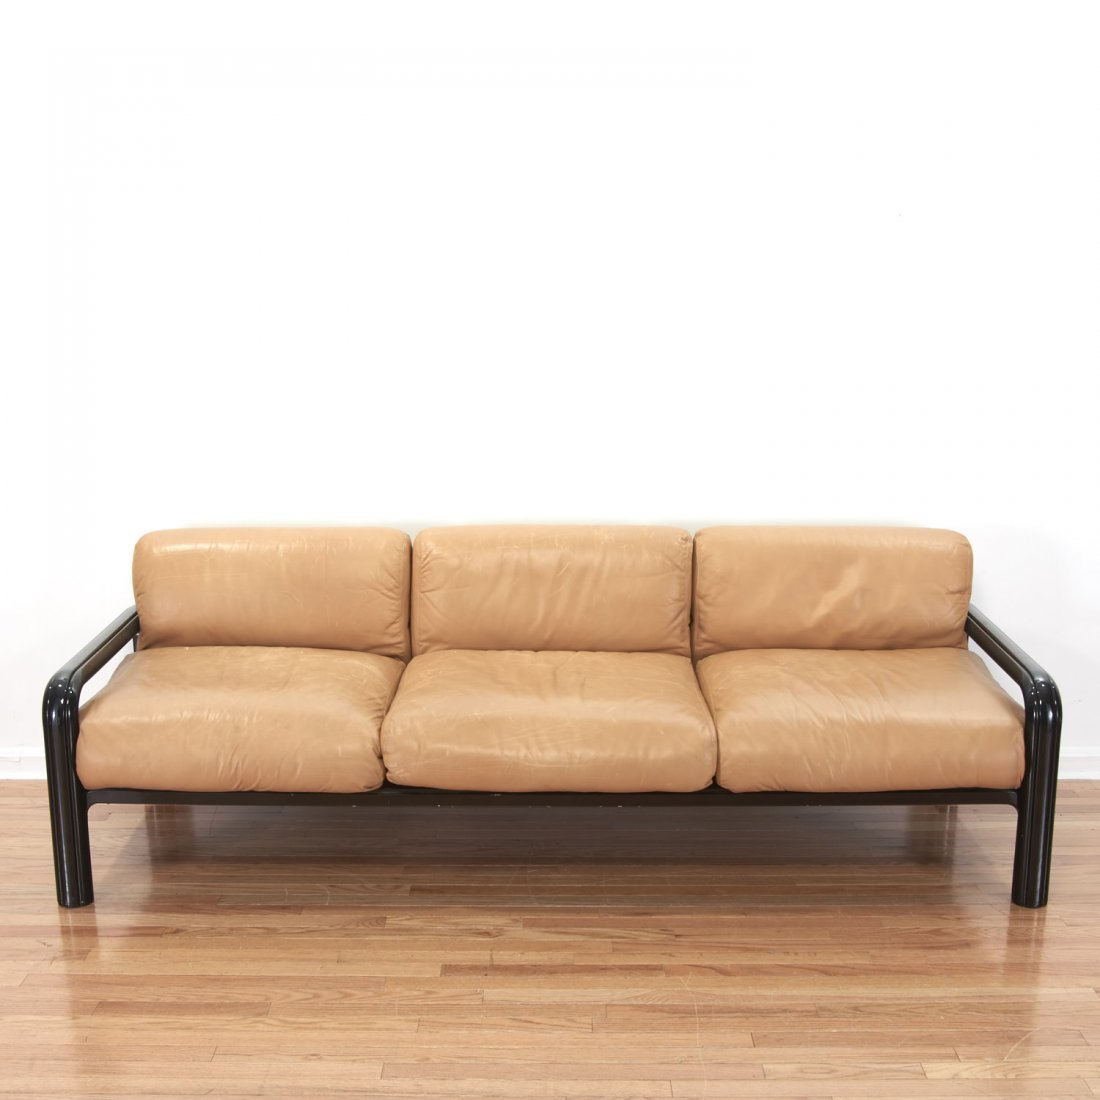 Gae Aulenti for knoll leather sofa